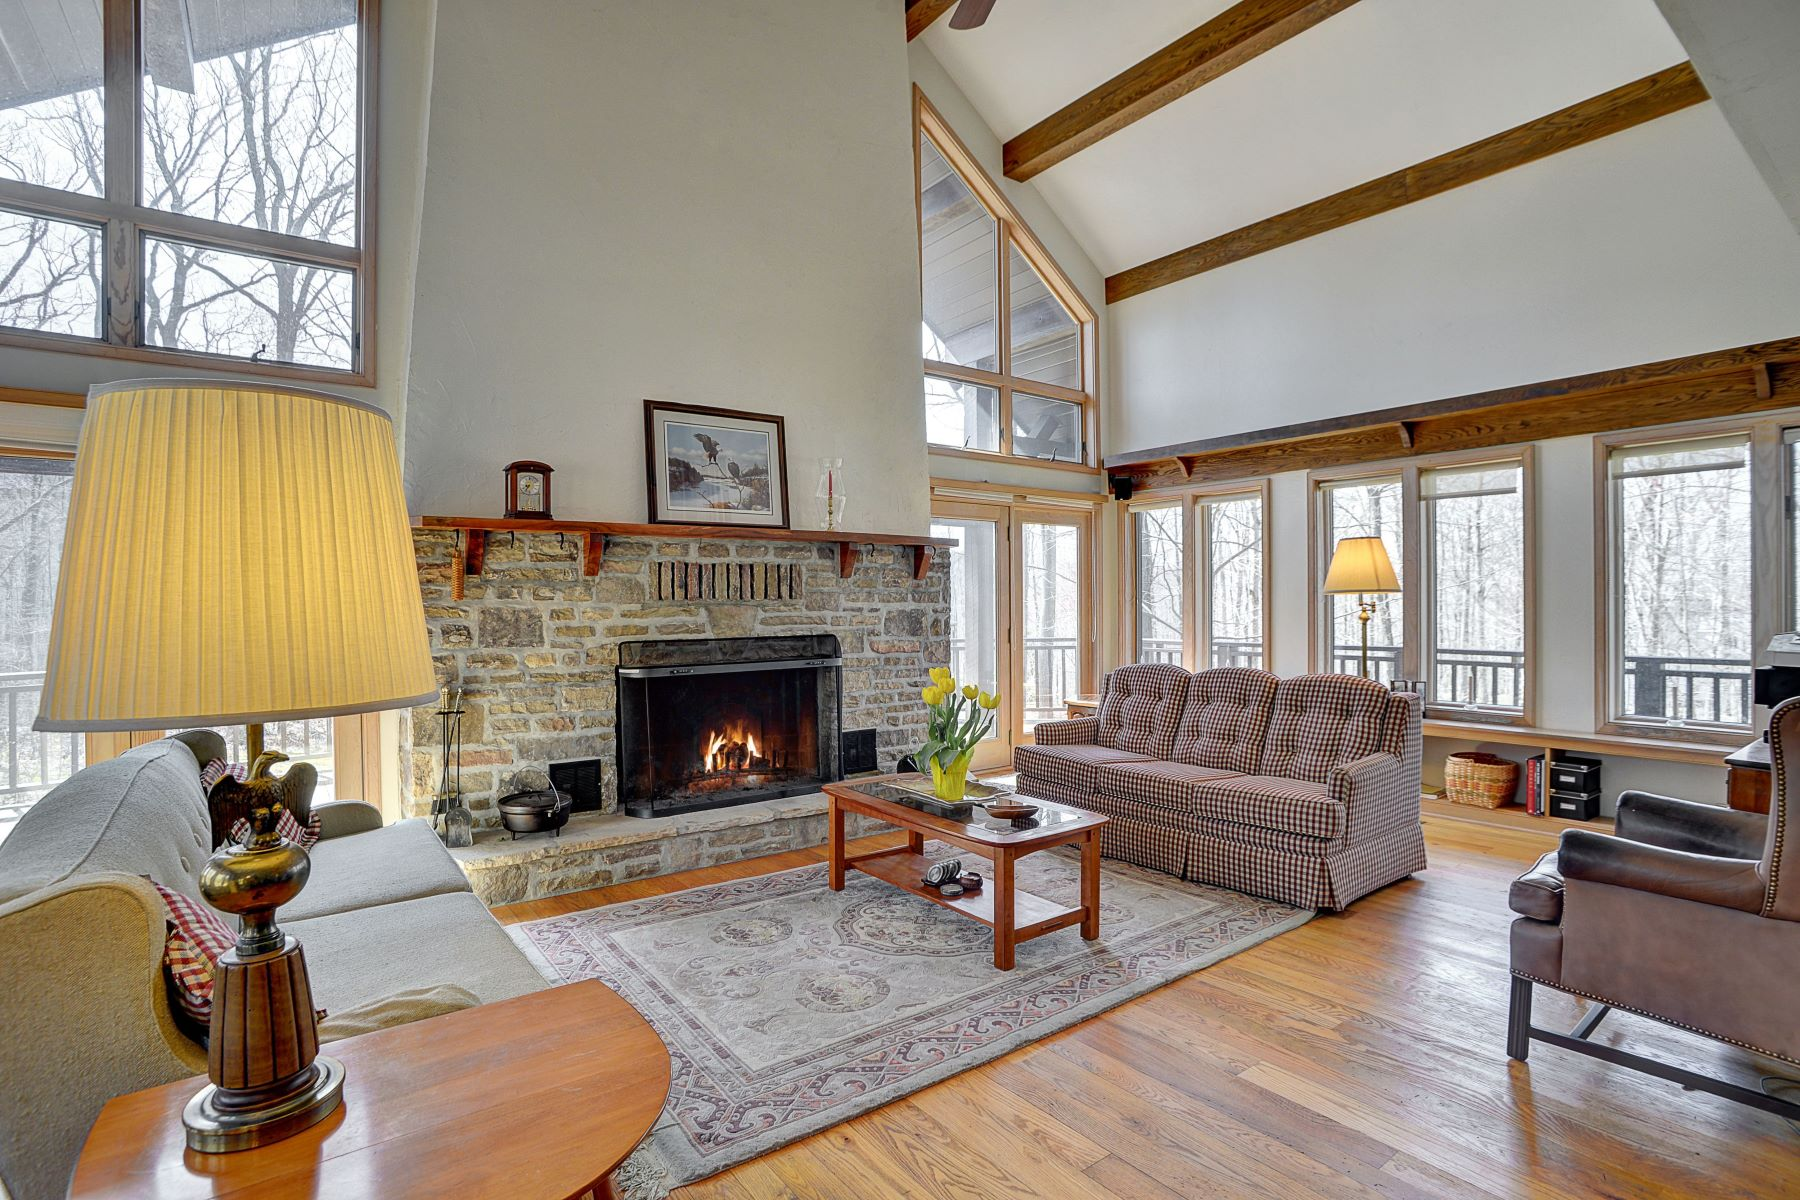 Single Family Homes for Sale at Private Country Club Living 120 Country Club Ct Jones Mills, Pennsylvania 15646 United States